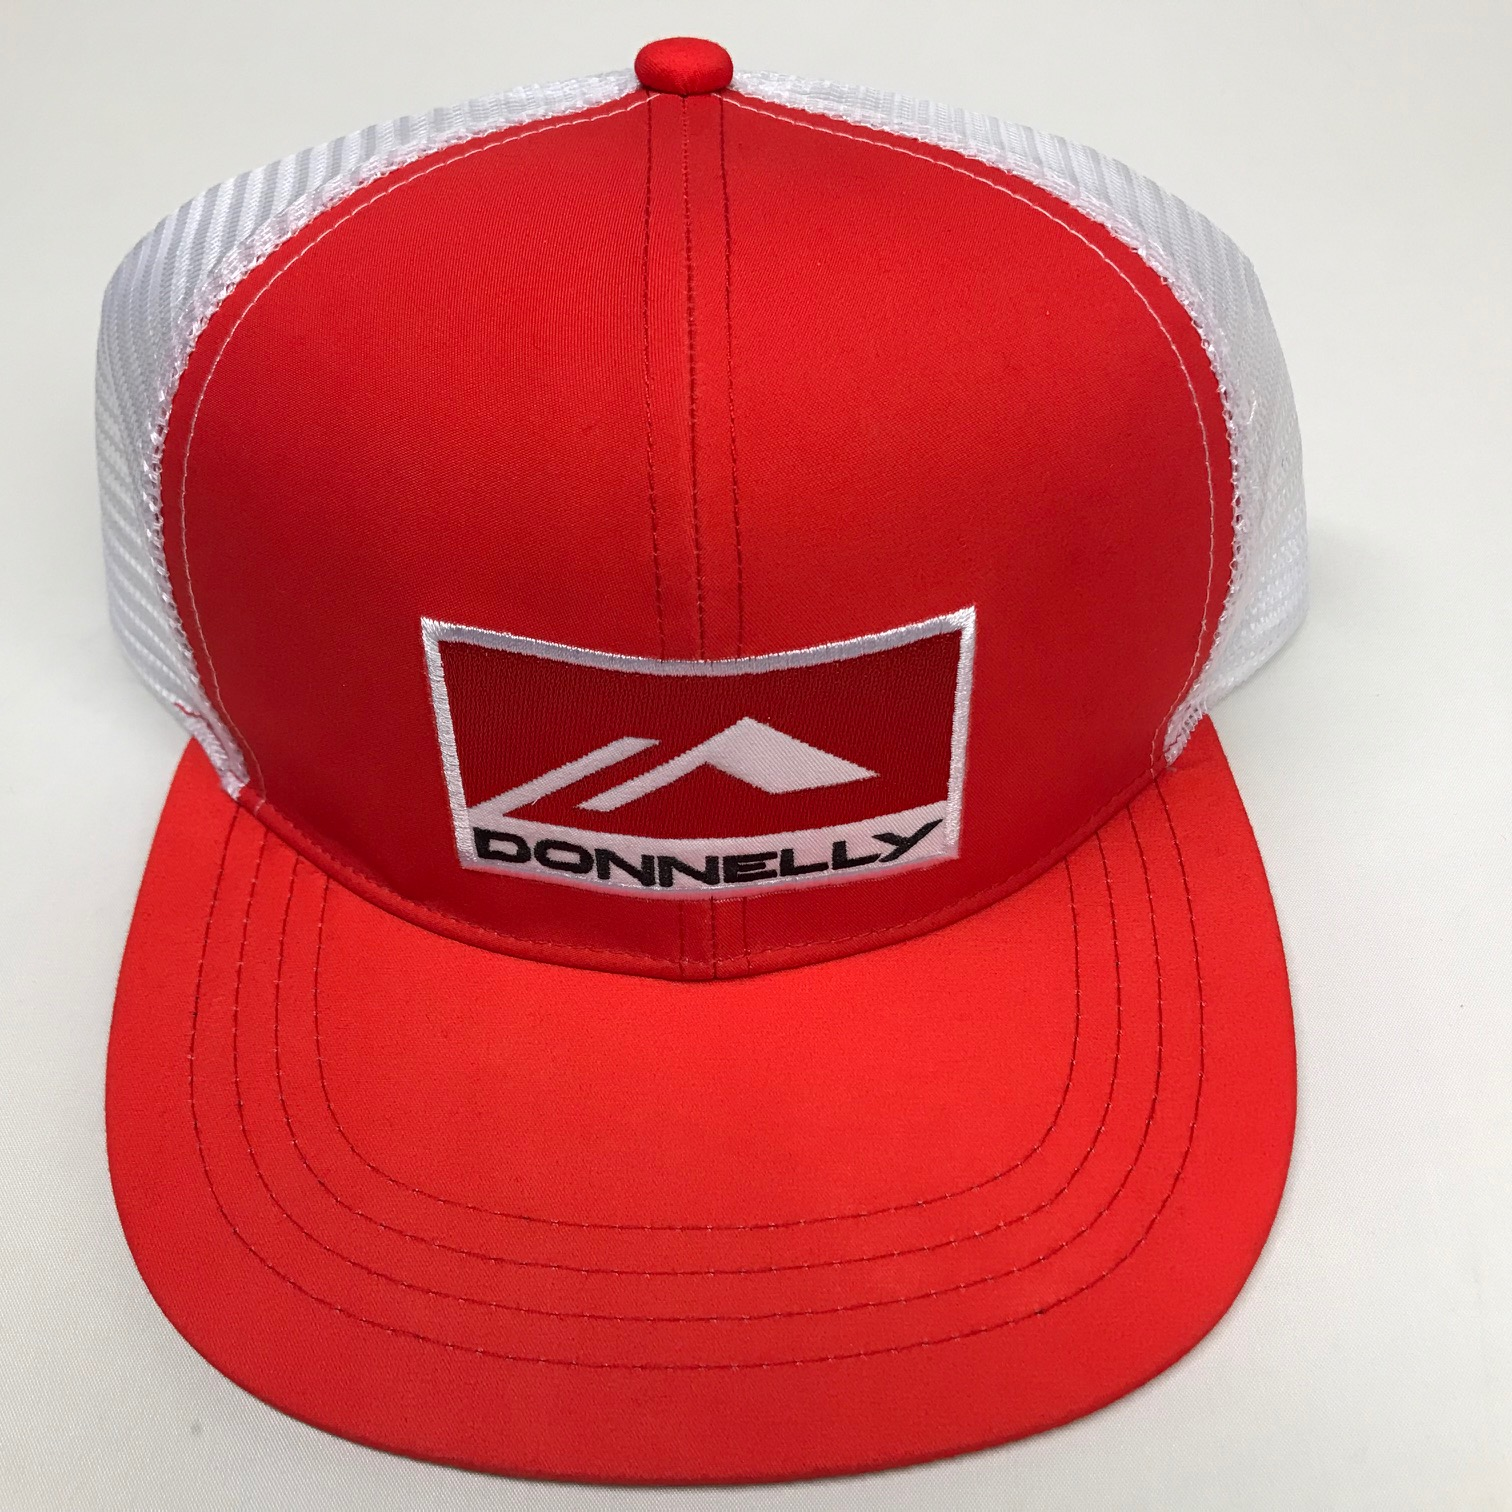 Donnelly Trucker Hat, Flat Bill, Red THUMBNAIL